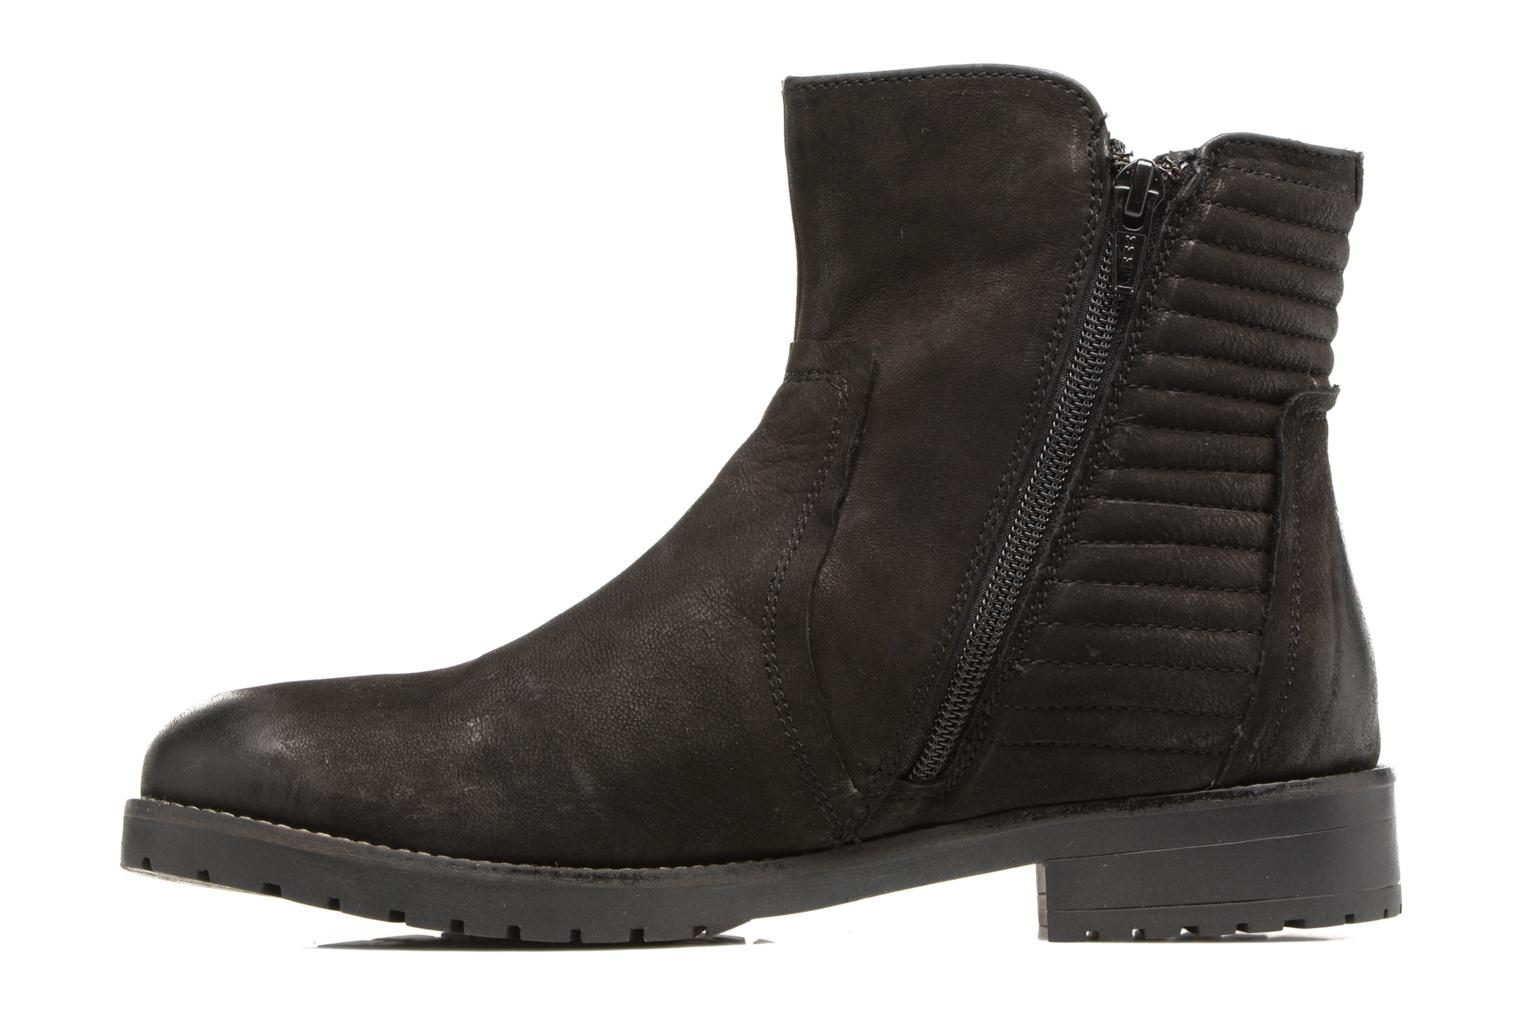 Bottines et boots Kickers ARMEN Noir vue face